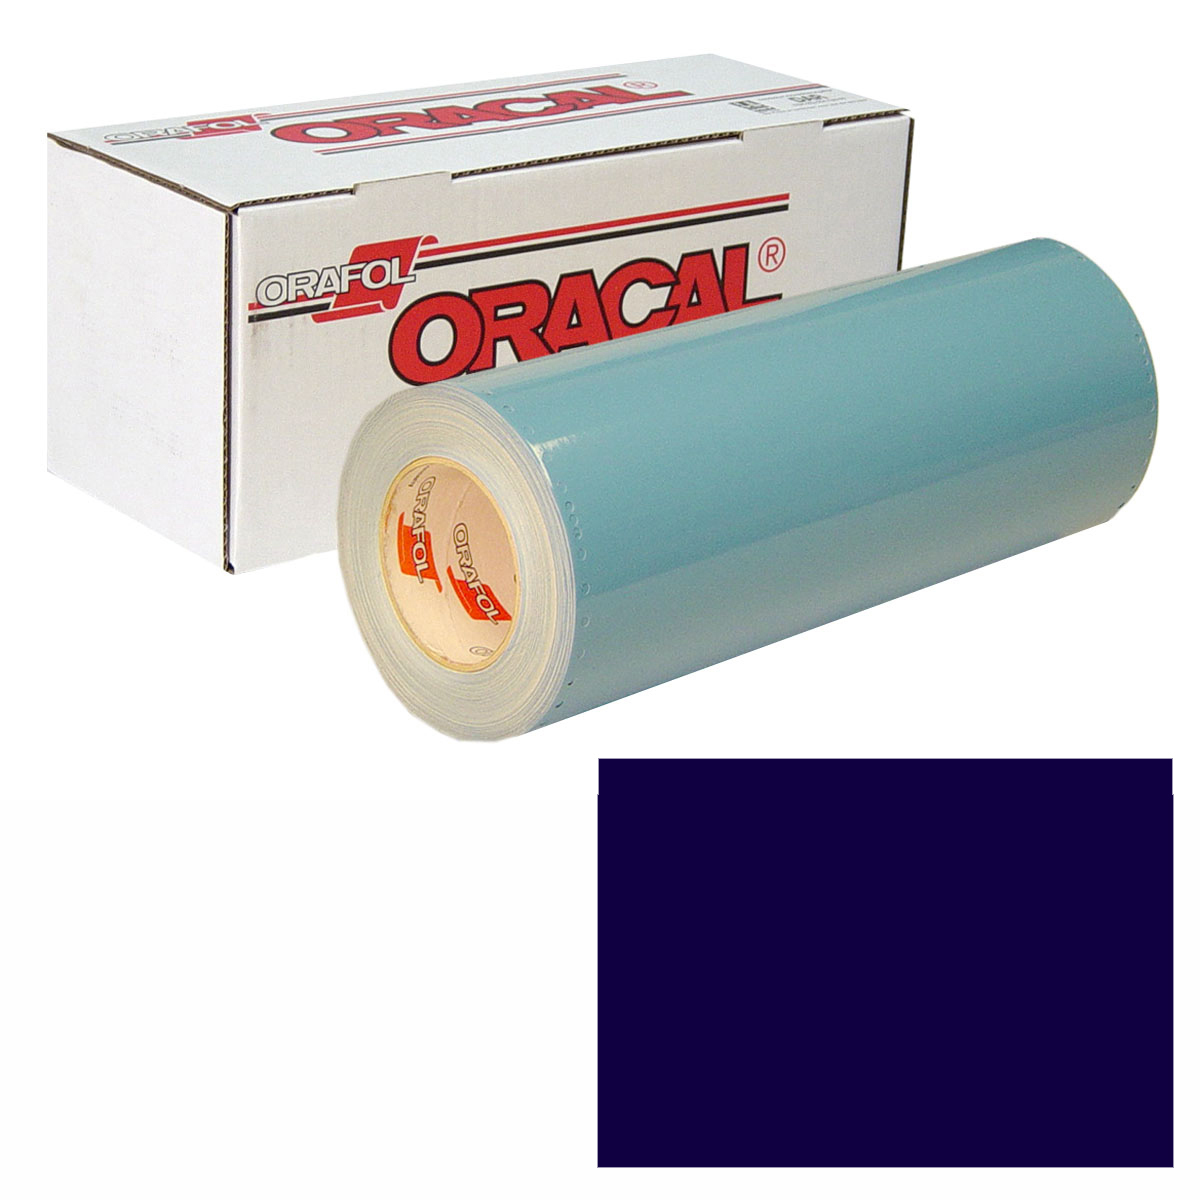 ORACAL 751 30in X 50yd 532 Black Blue